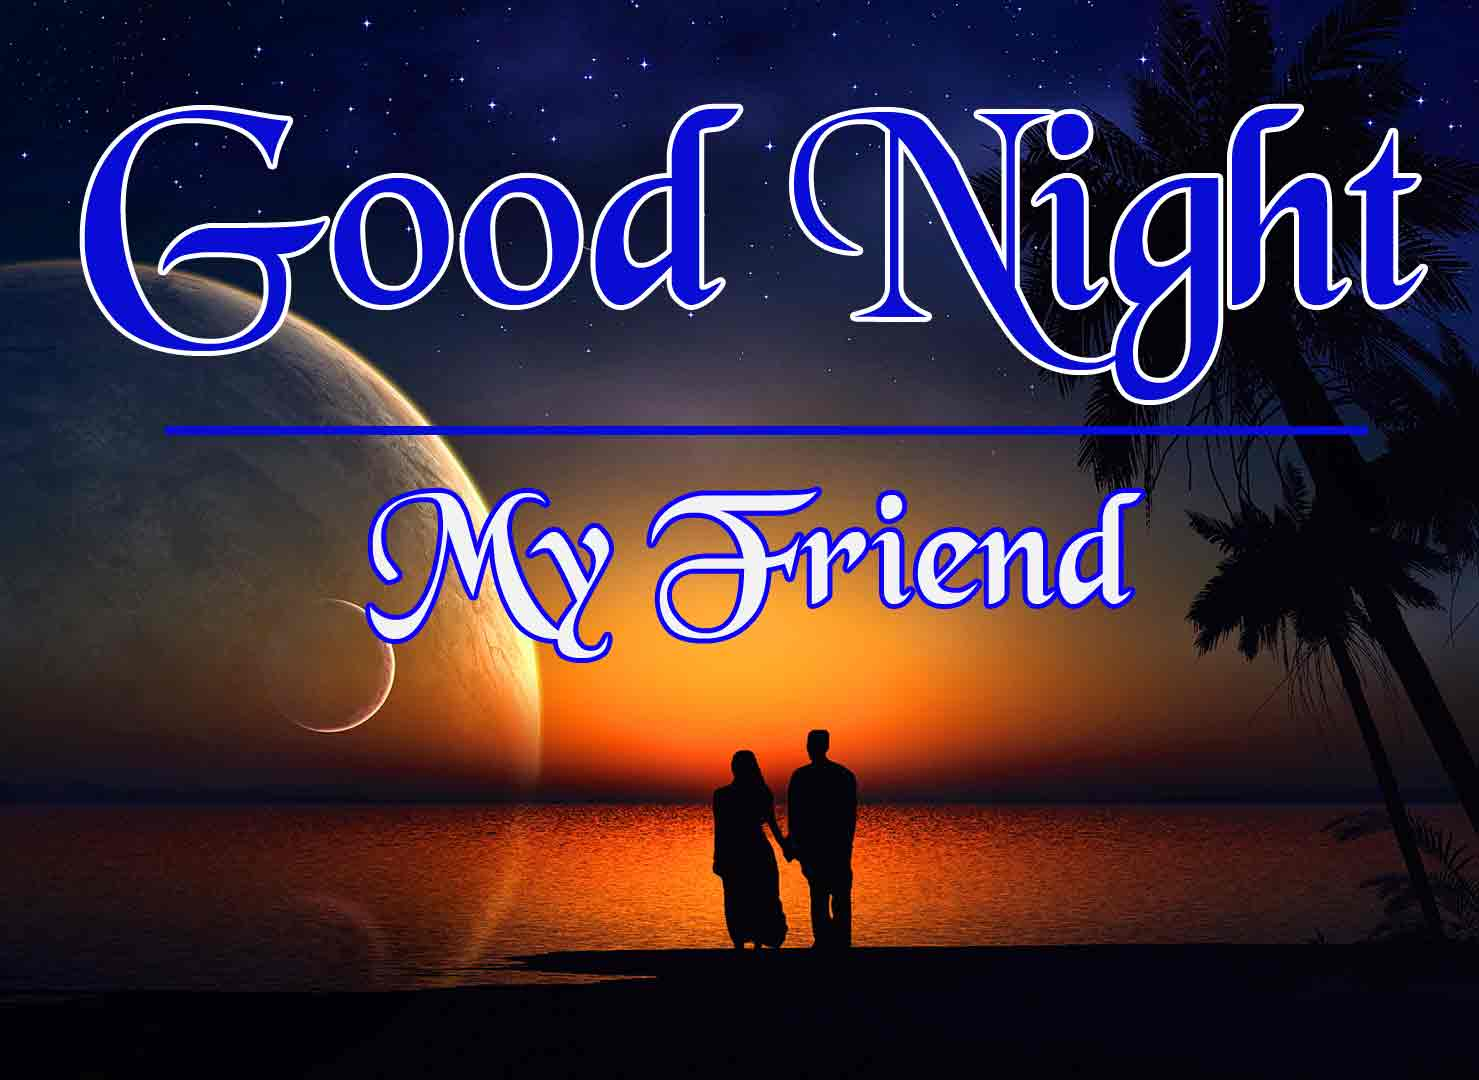 Good Night Wallpaper Free Download